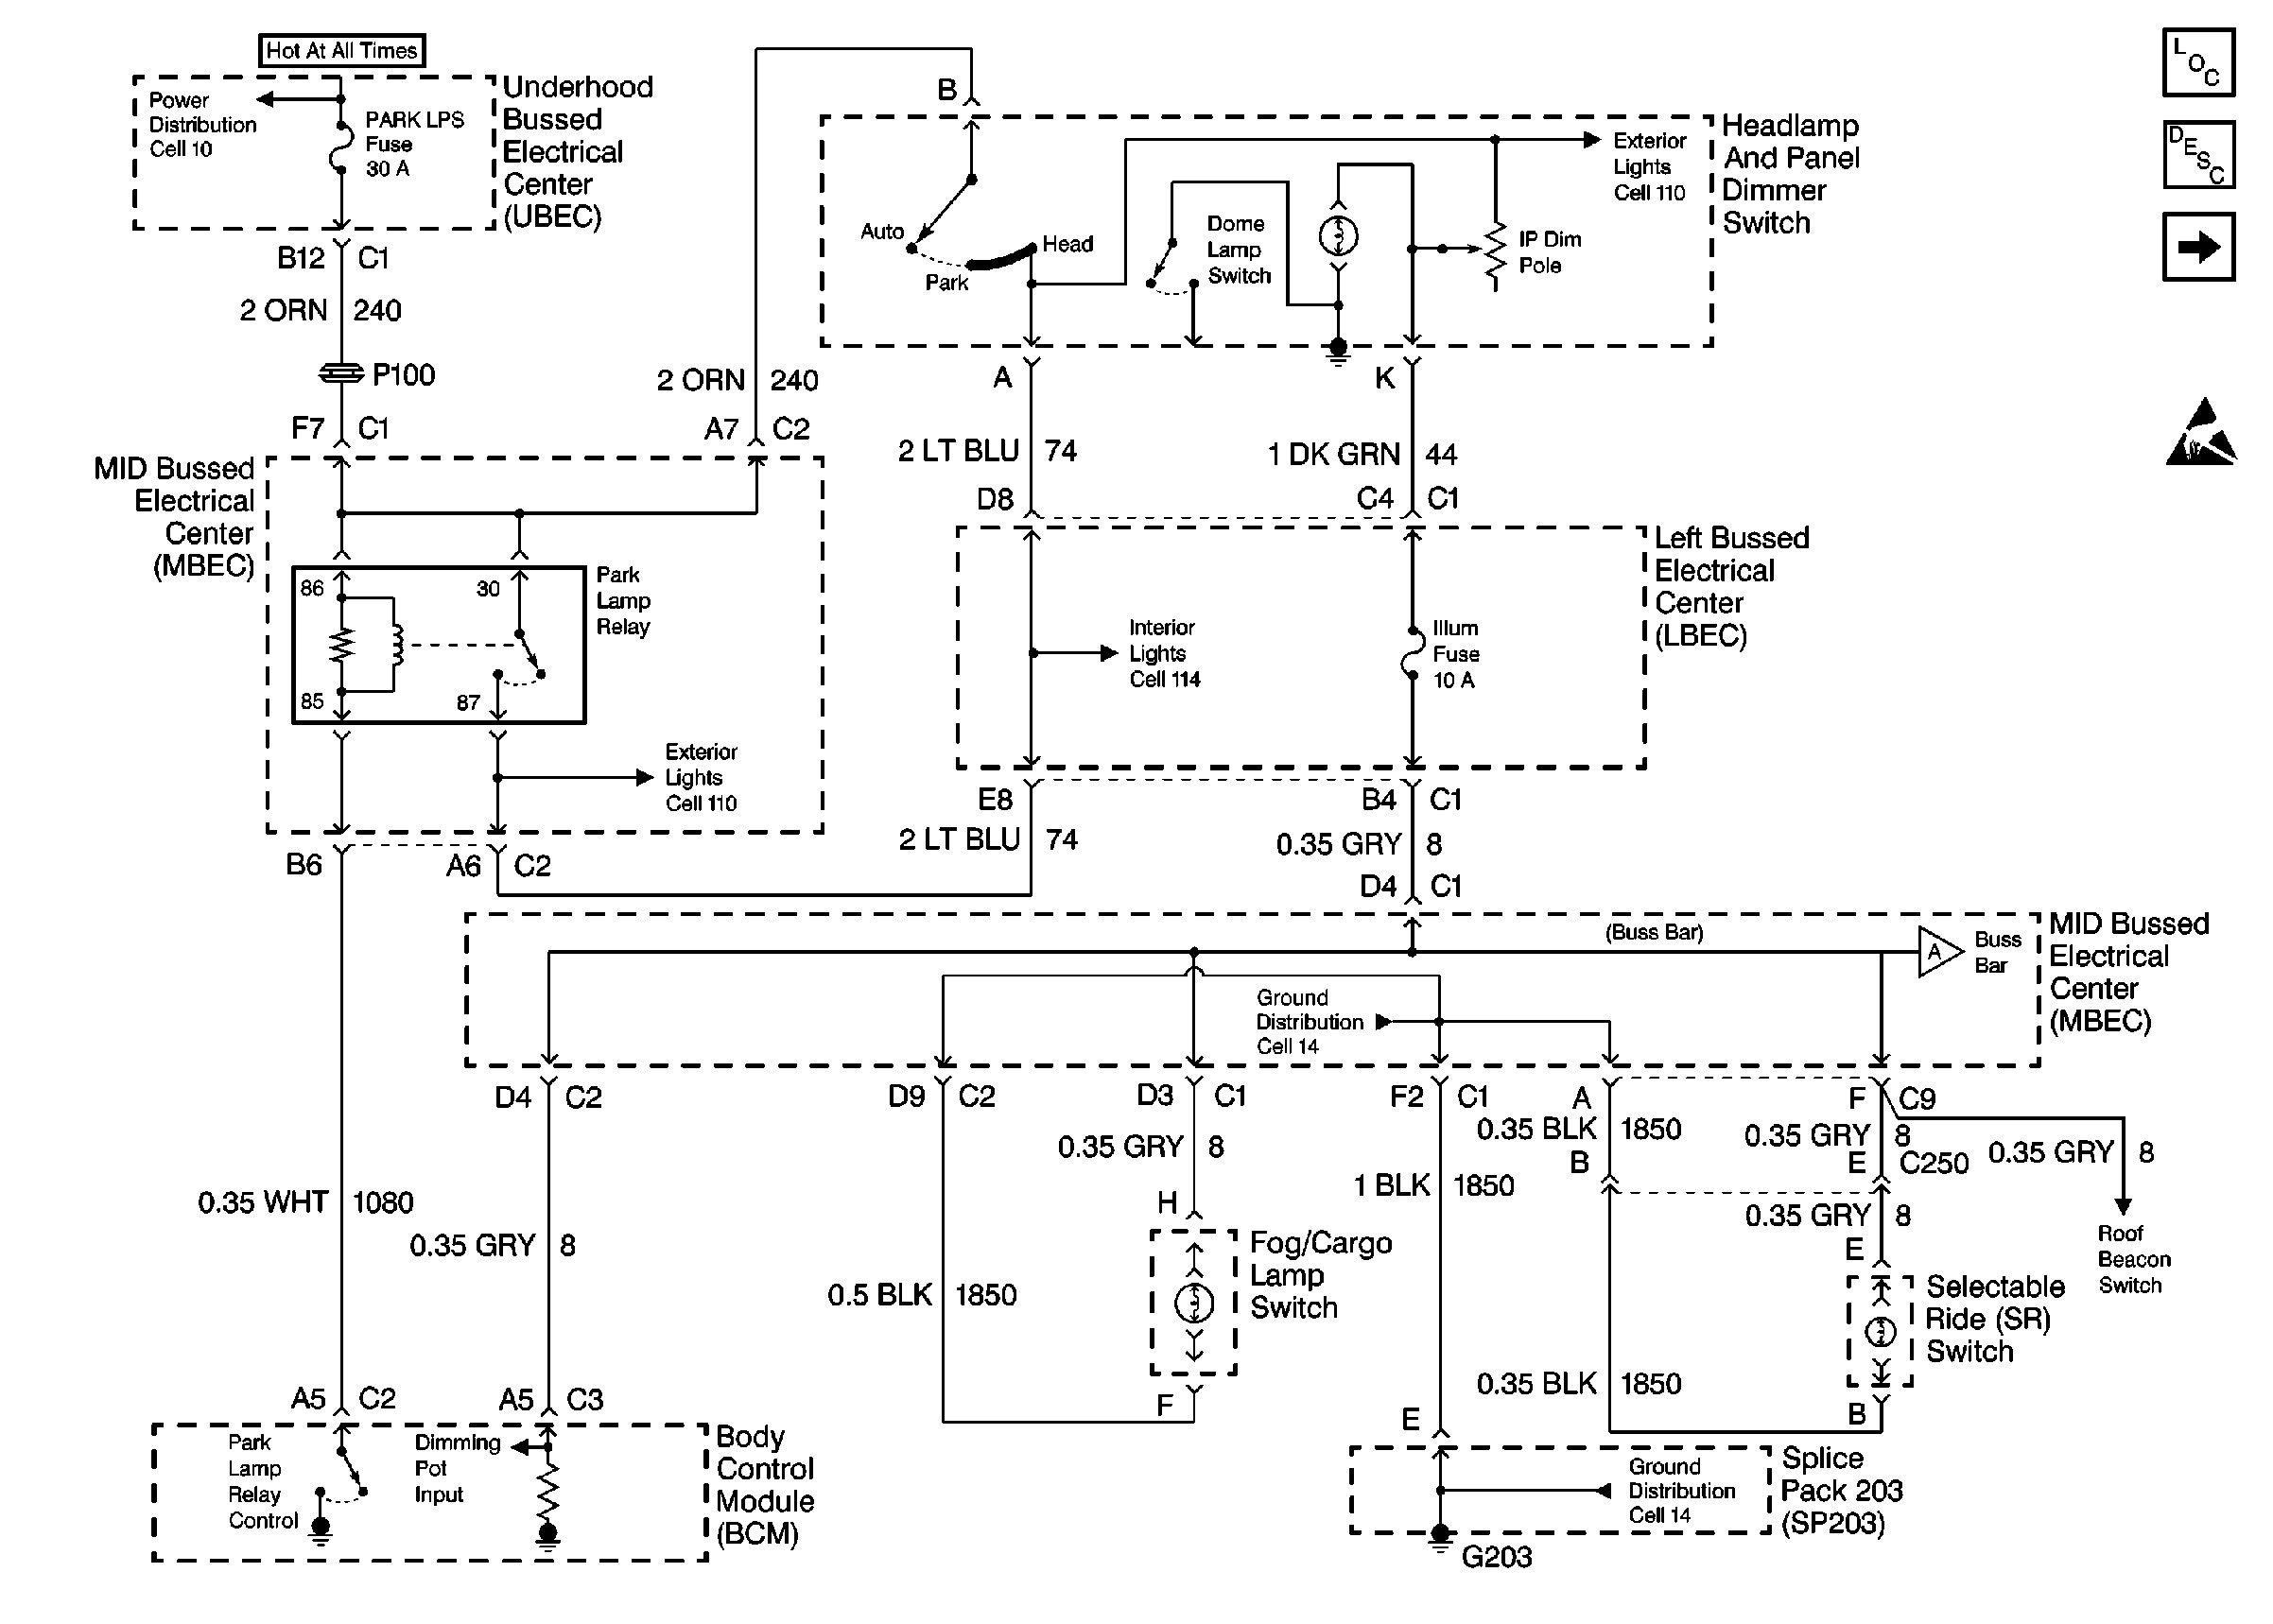 Wiring Diagram For 2003 Chevy Silverado Wiring Diagram Used 2000 Chevy Silverado 1500 Headlight Wiring Diagram 2000 Chevy Silverado Z71 Wiring Diagram